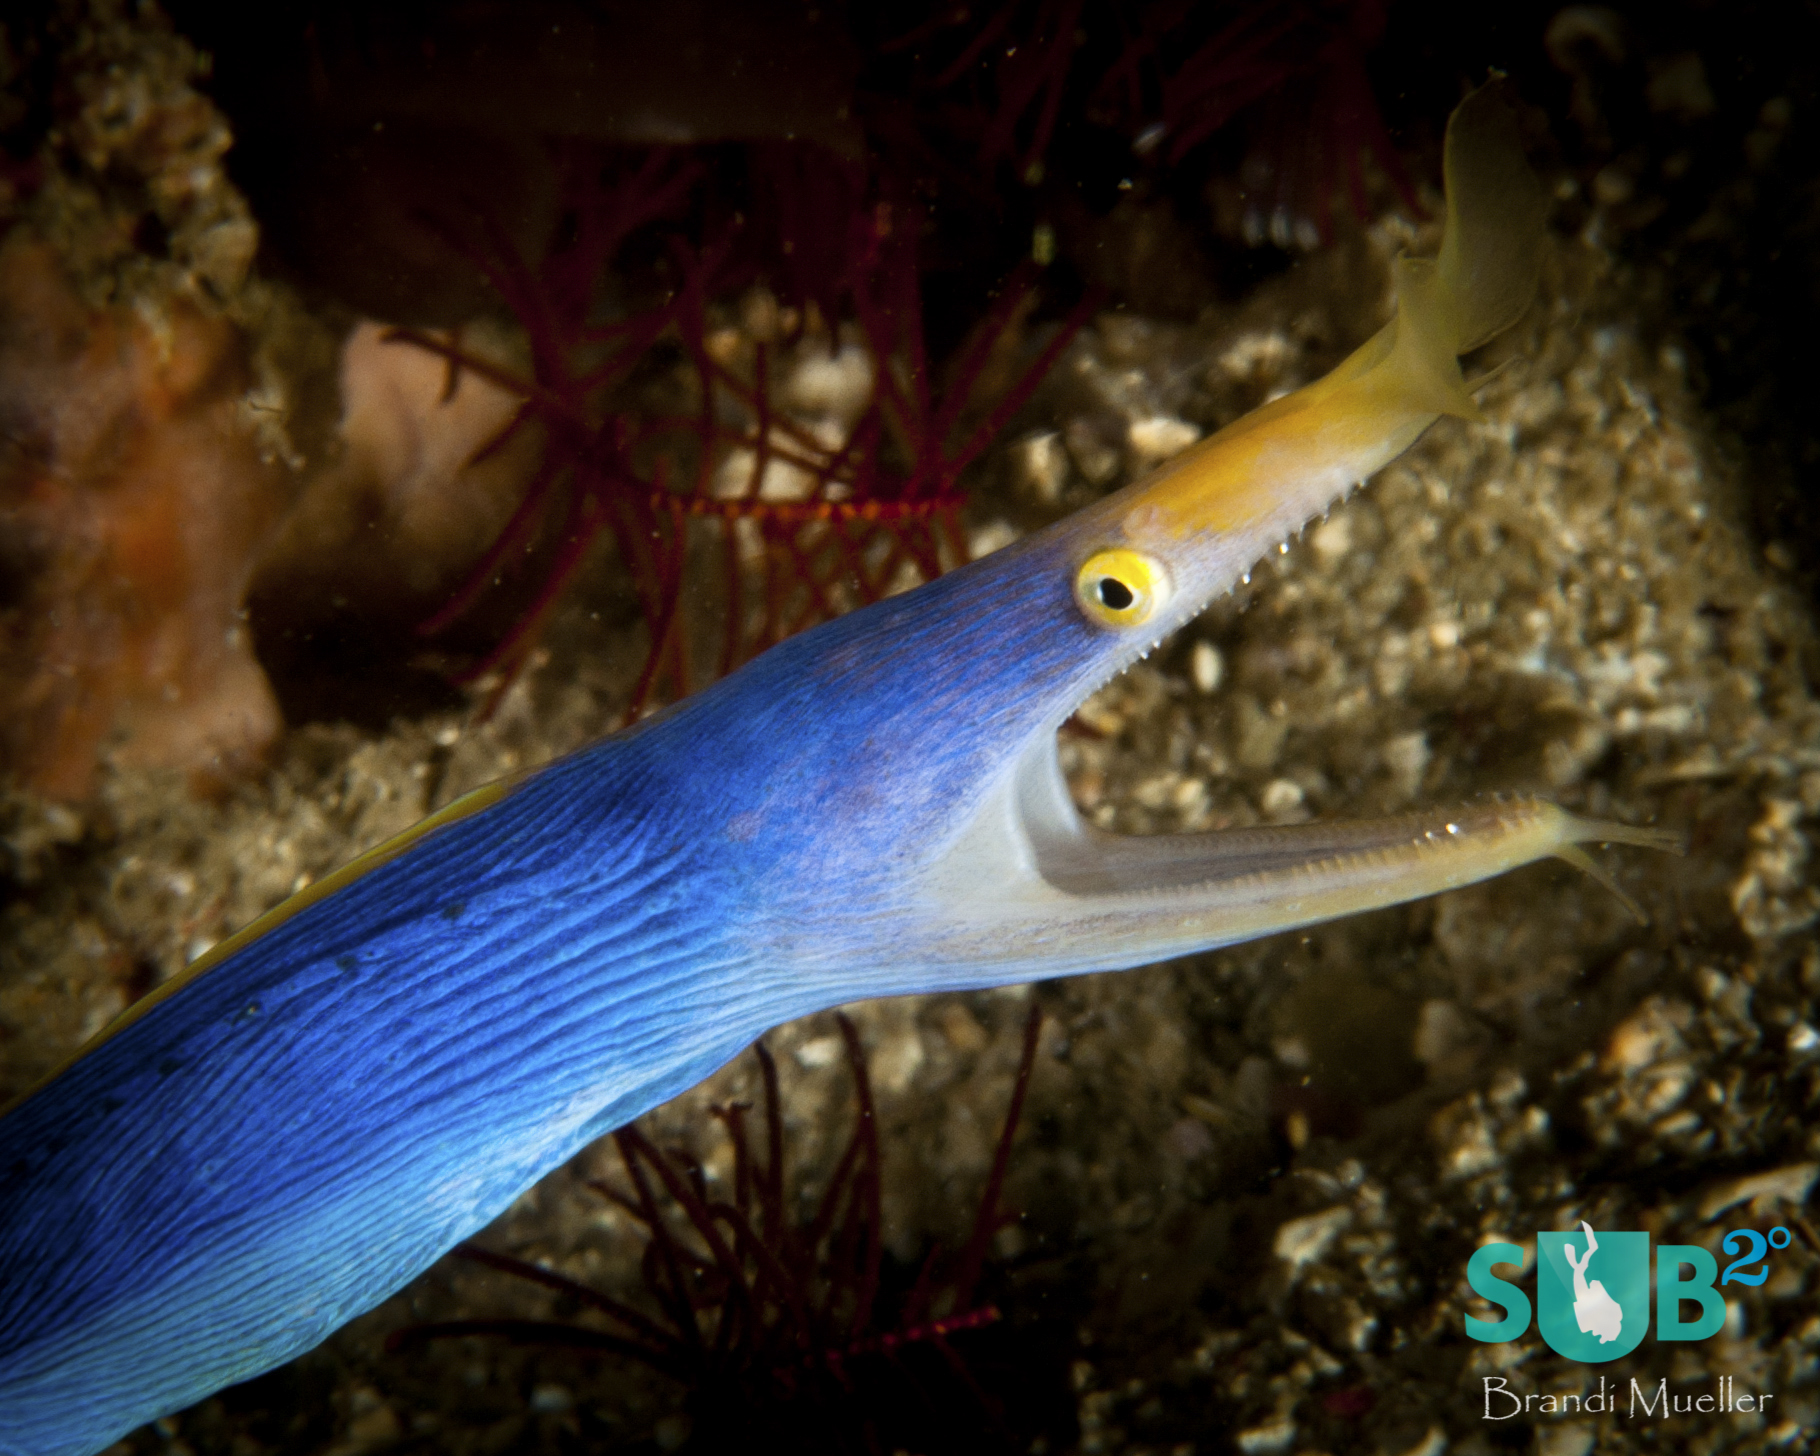 Male ribbon eels can be found in the Philippines.  Juvenile ribbon eels are black with a yellow dorsal fin, while adult males are blue with a yellow dorsal fin (like this one), and adult females are completely yellow.